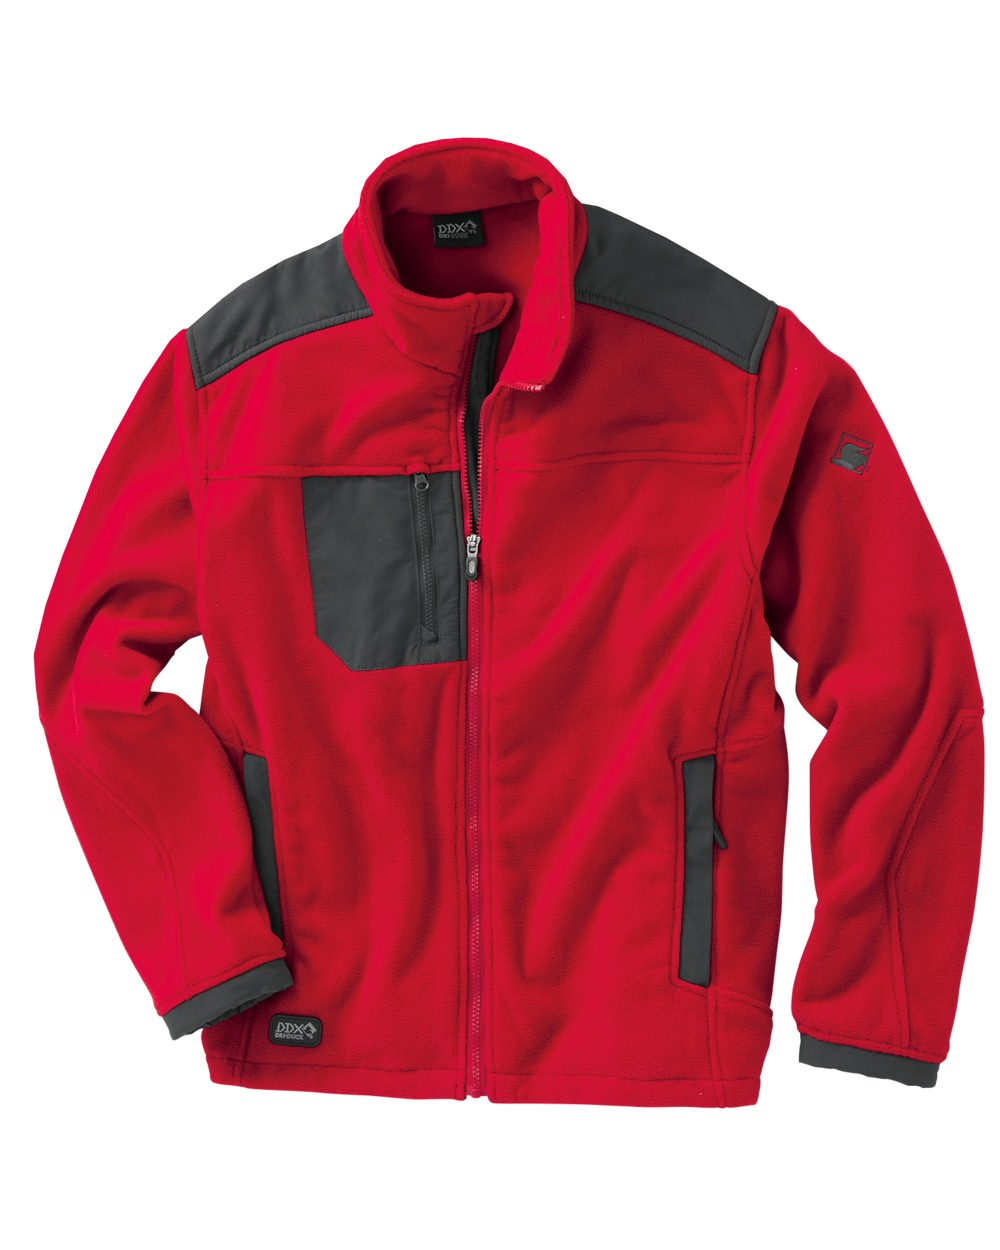 DRI DUCK 7350 - Quest Microfleece Full-Zip Jacket with Polyester Panels